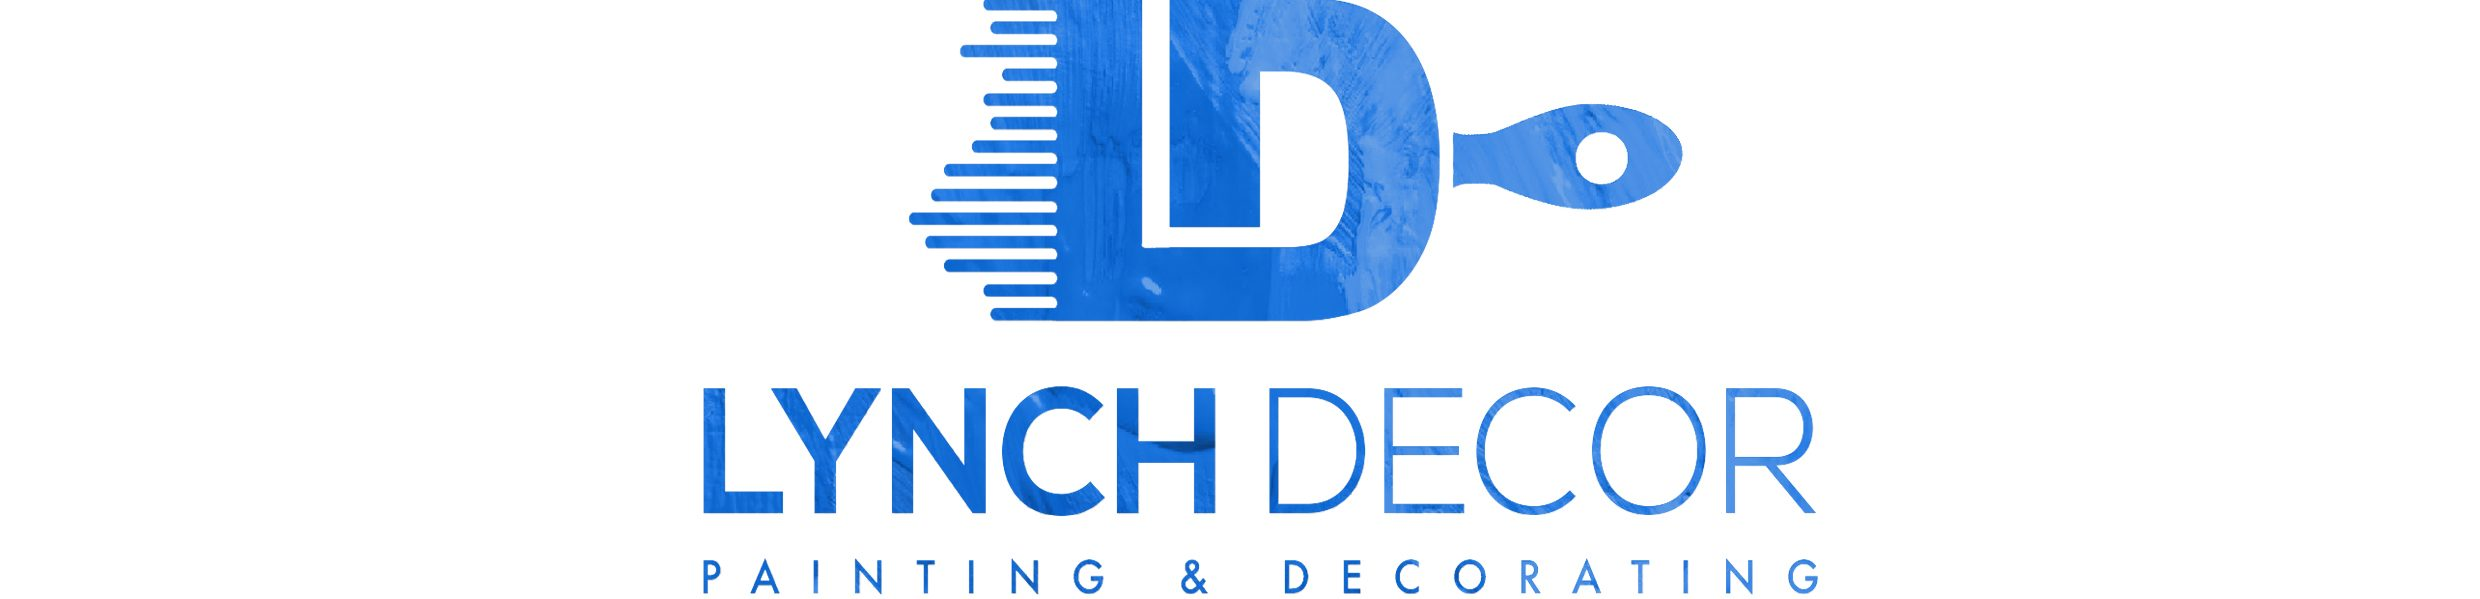 Lynch Decor